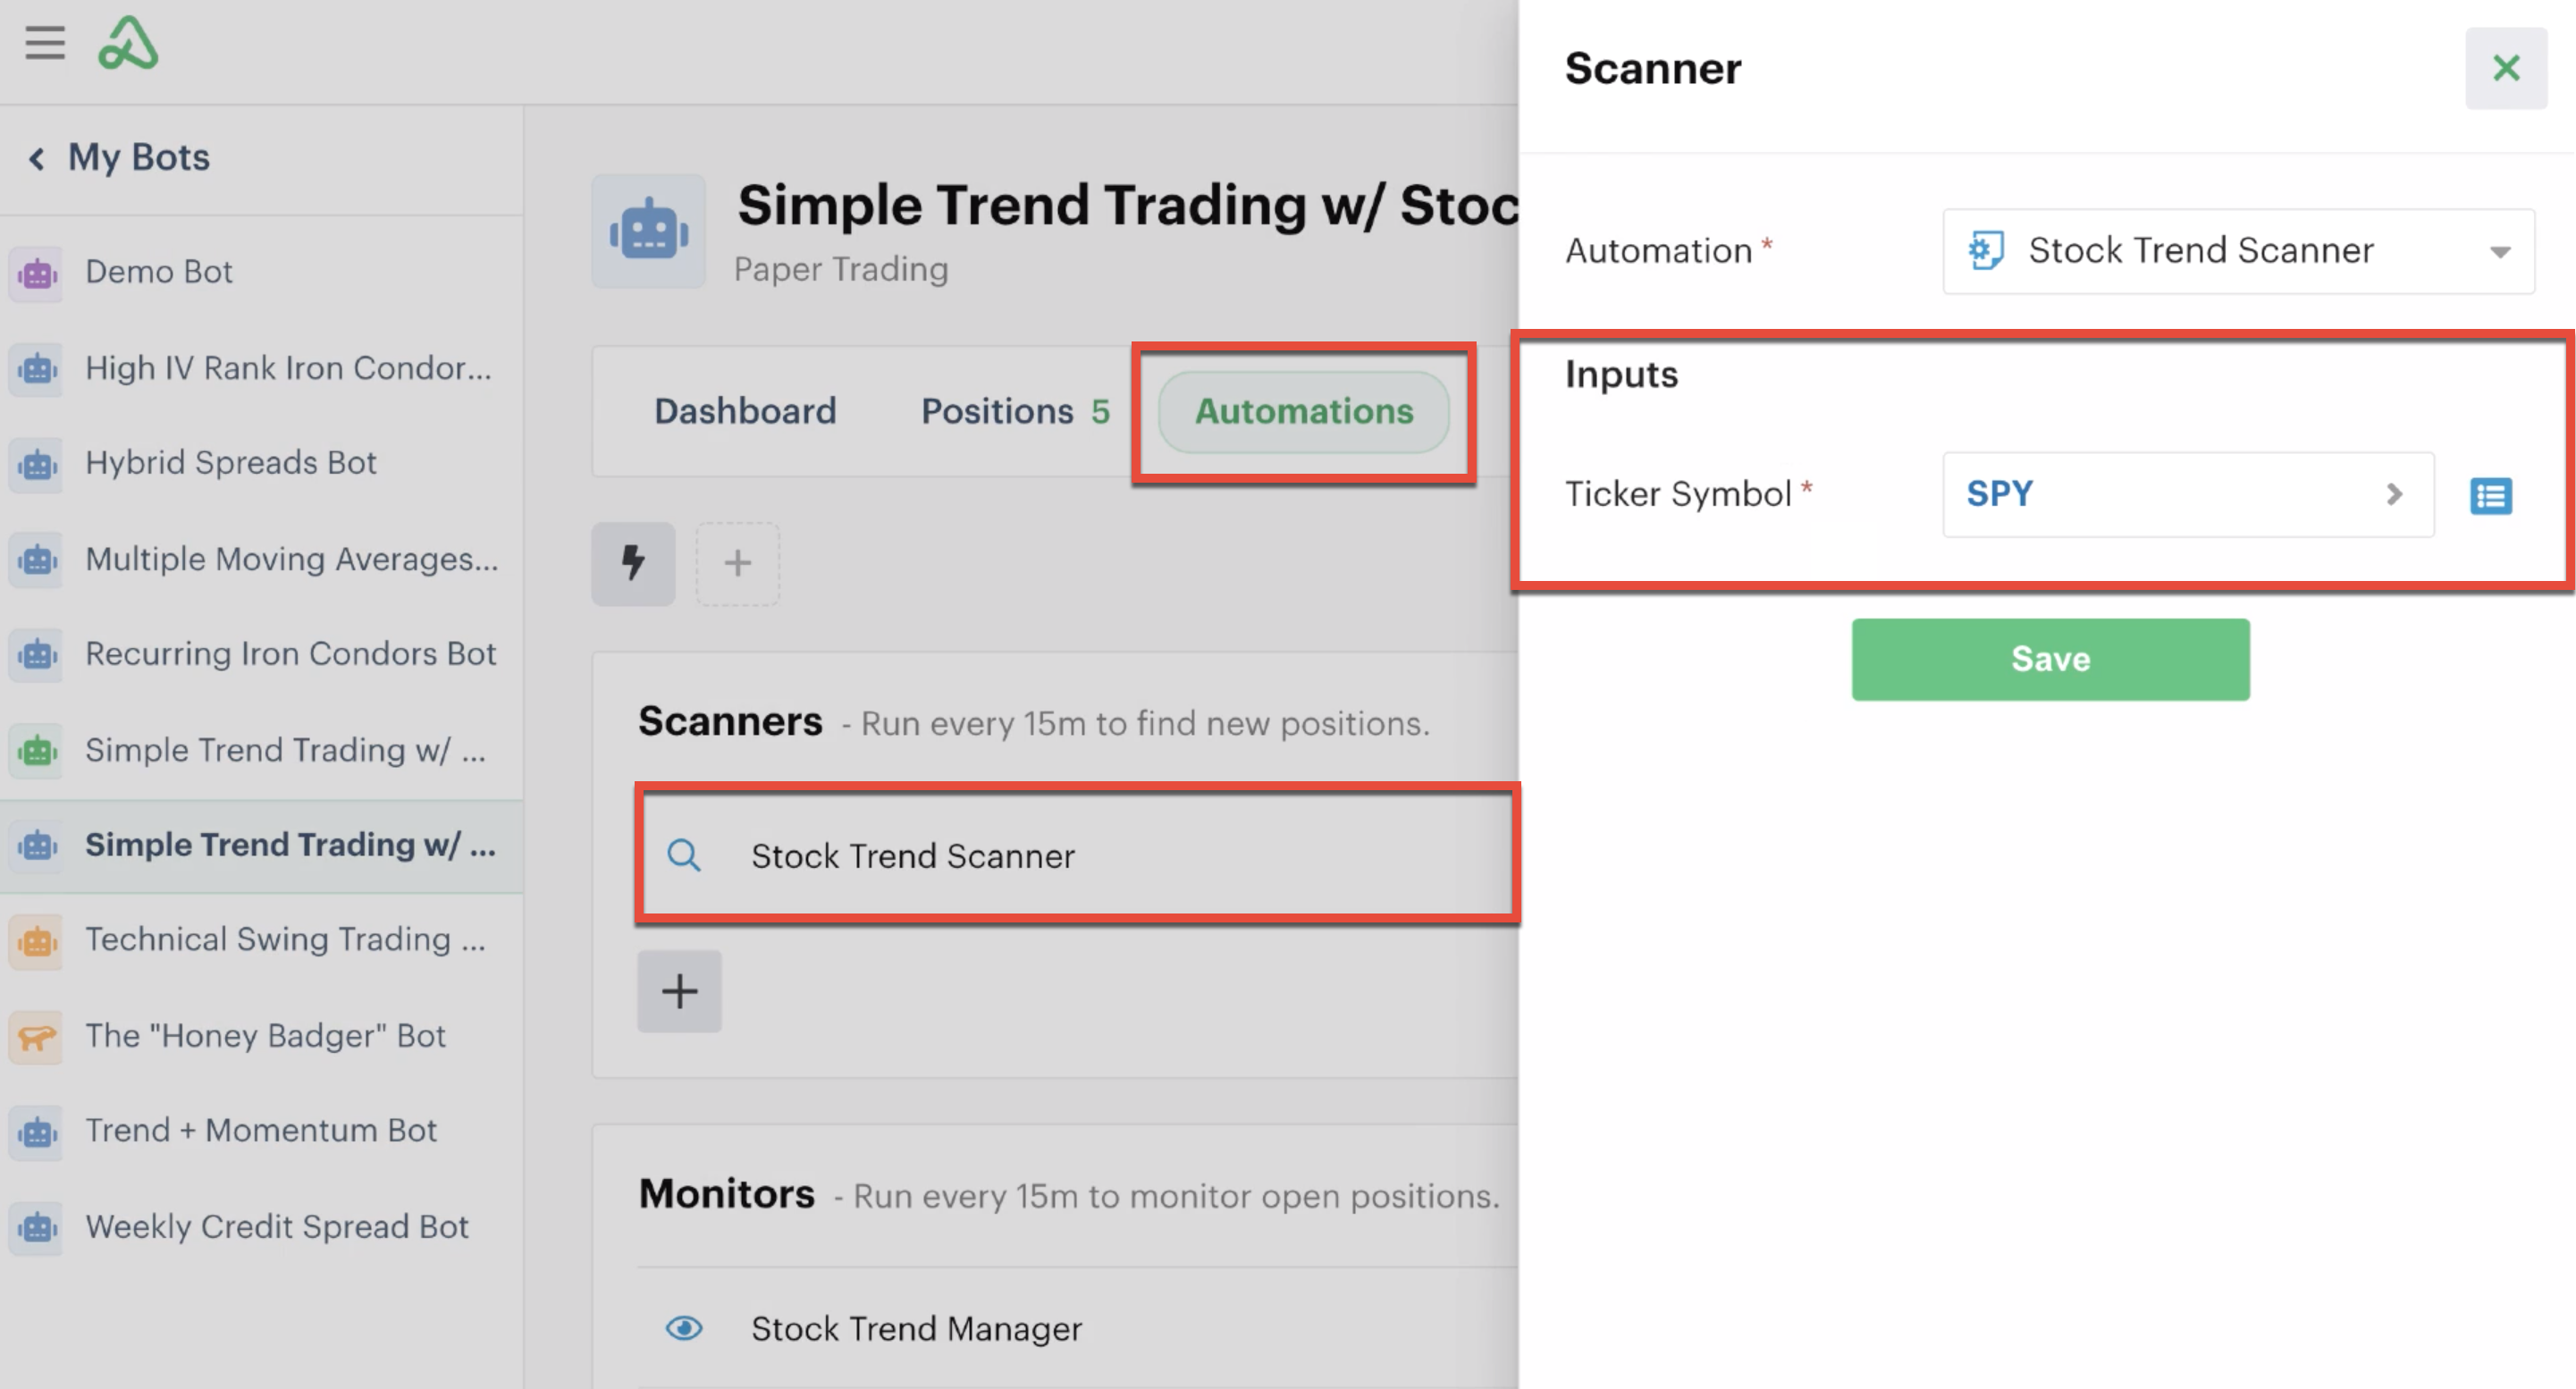 Scanner automation custom input in automations tab